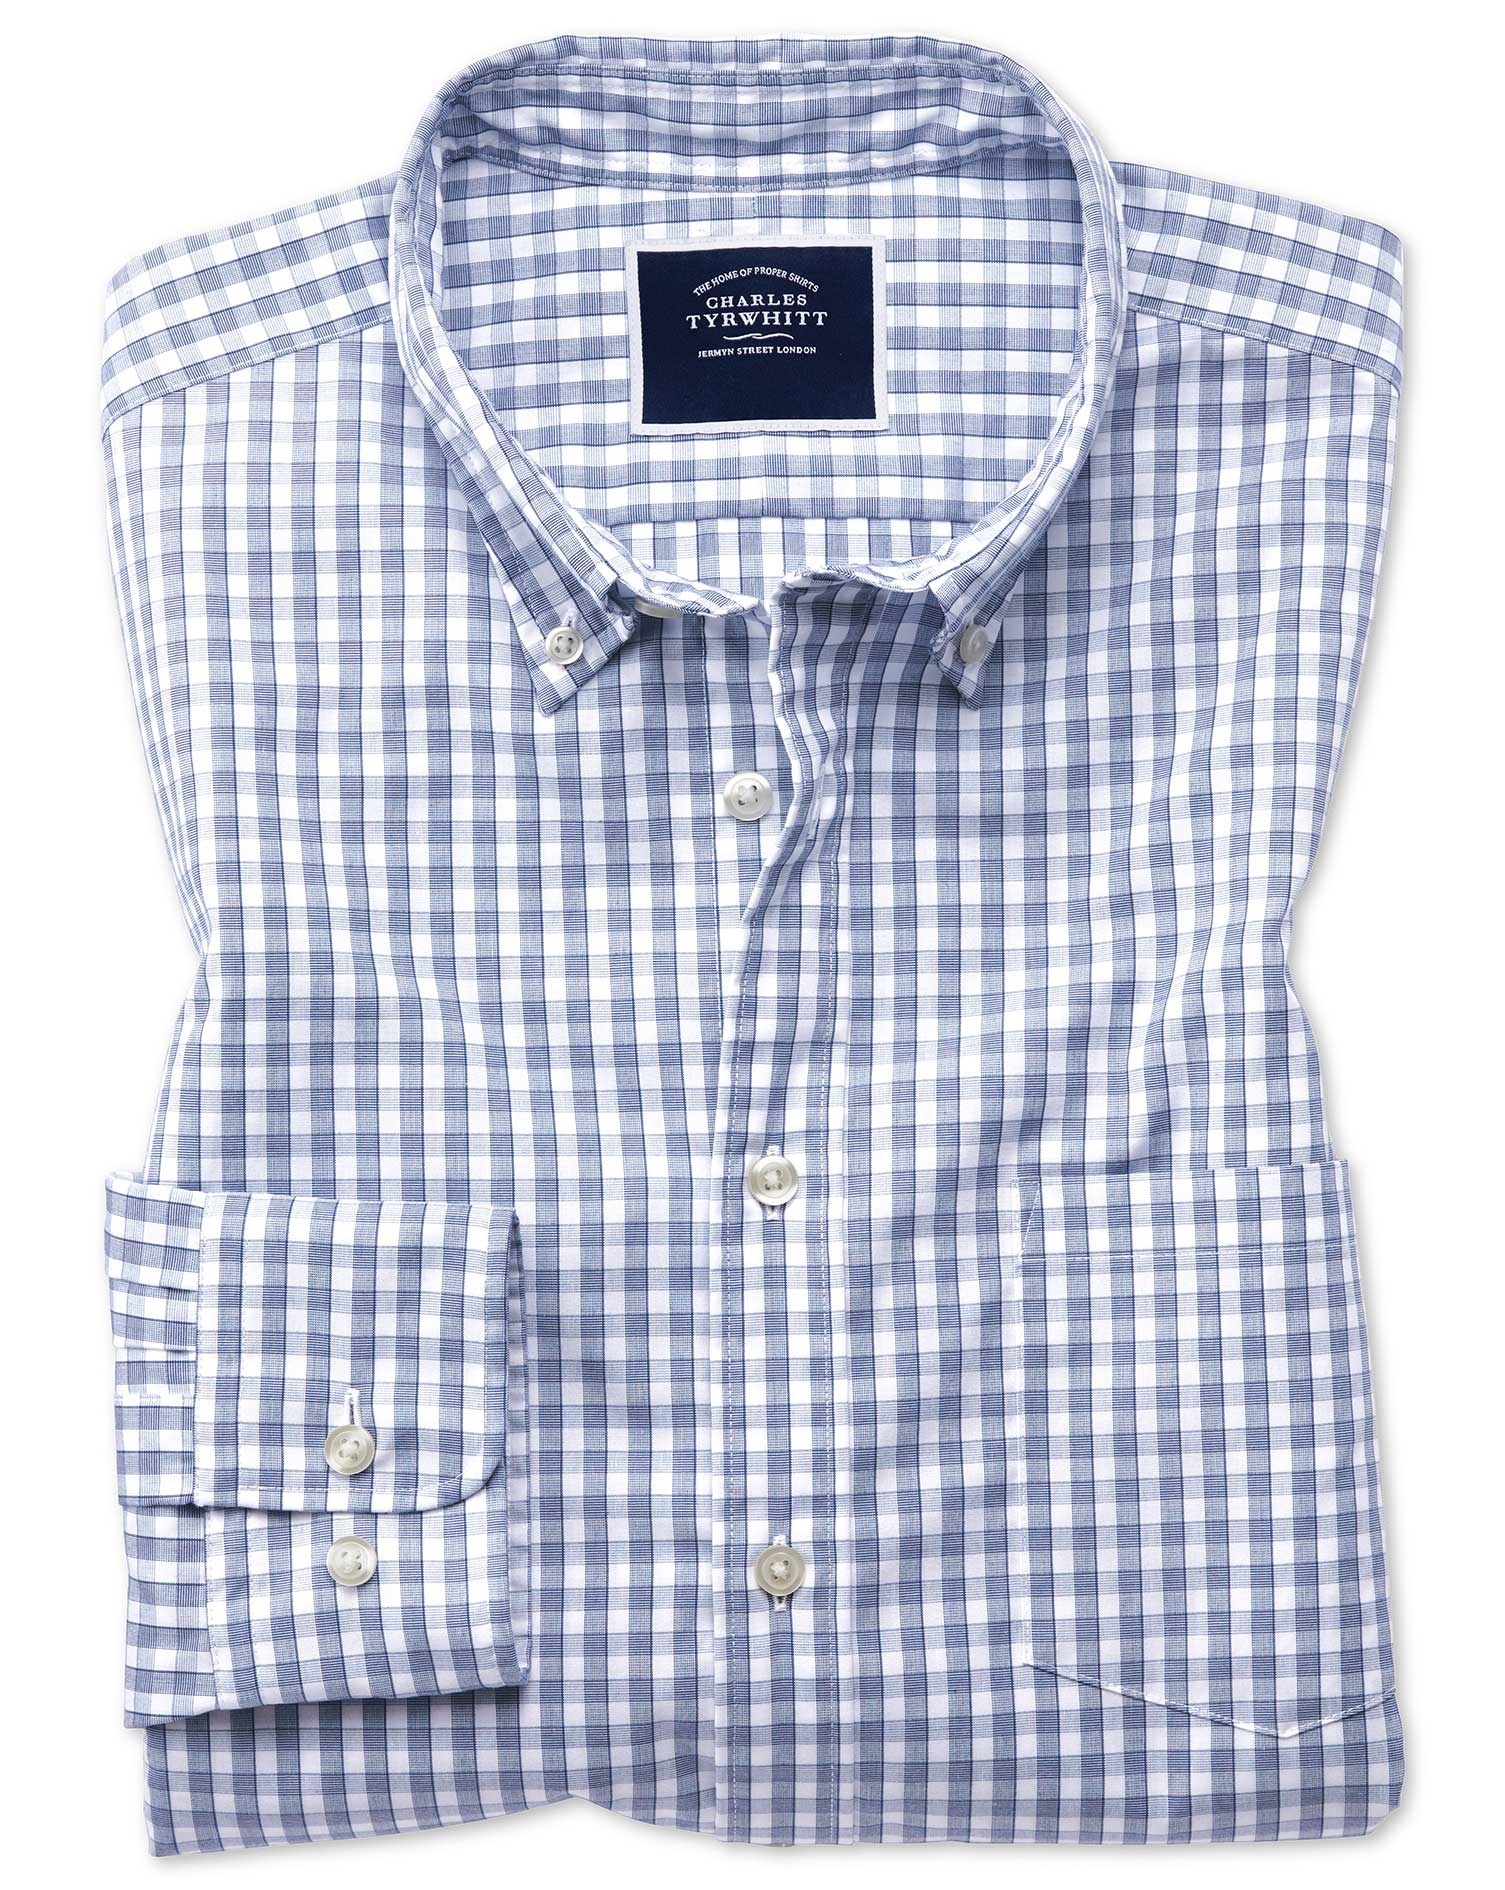 Classic Fit Navy Gingham Soft Washed Non-Iron Tyrwhitt Cool Cotton Shirt Single Cuff Size Large by C